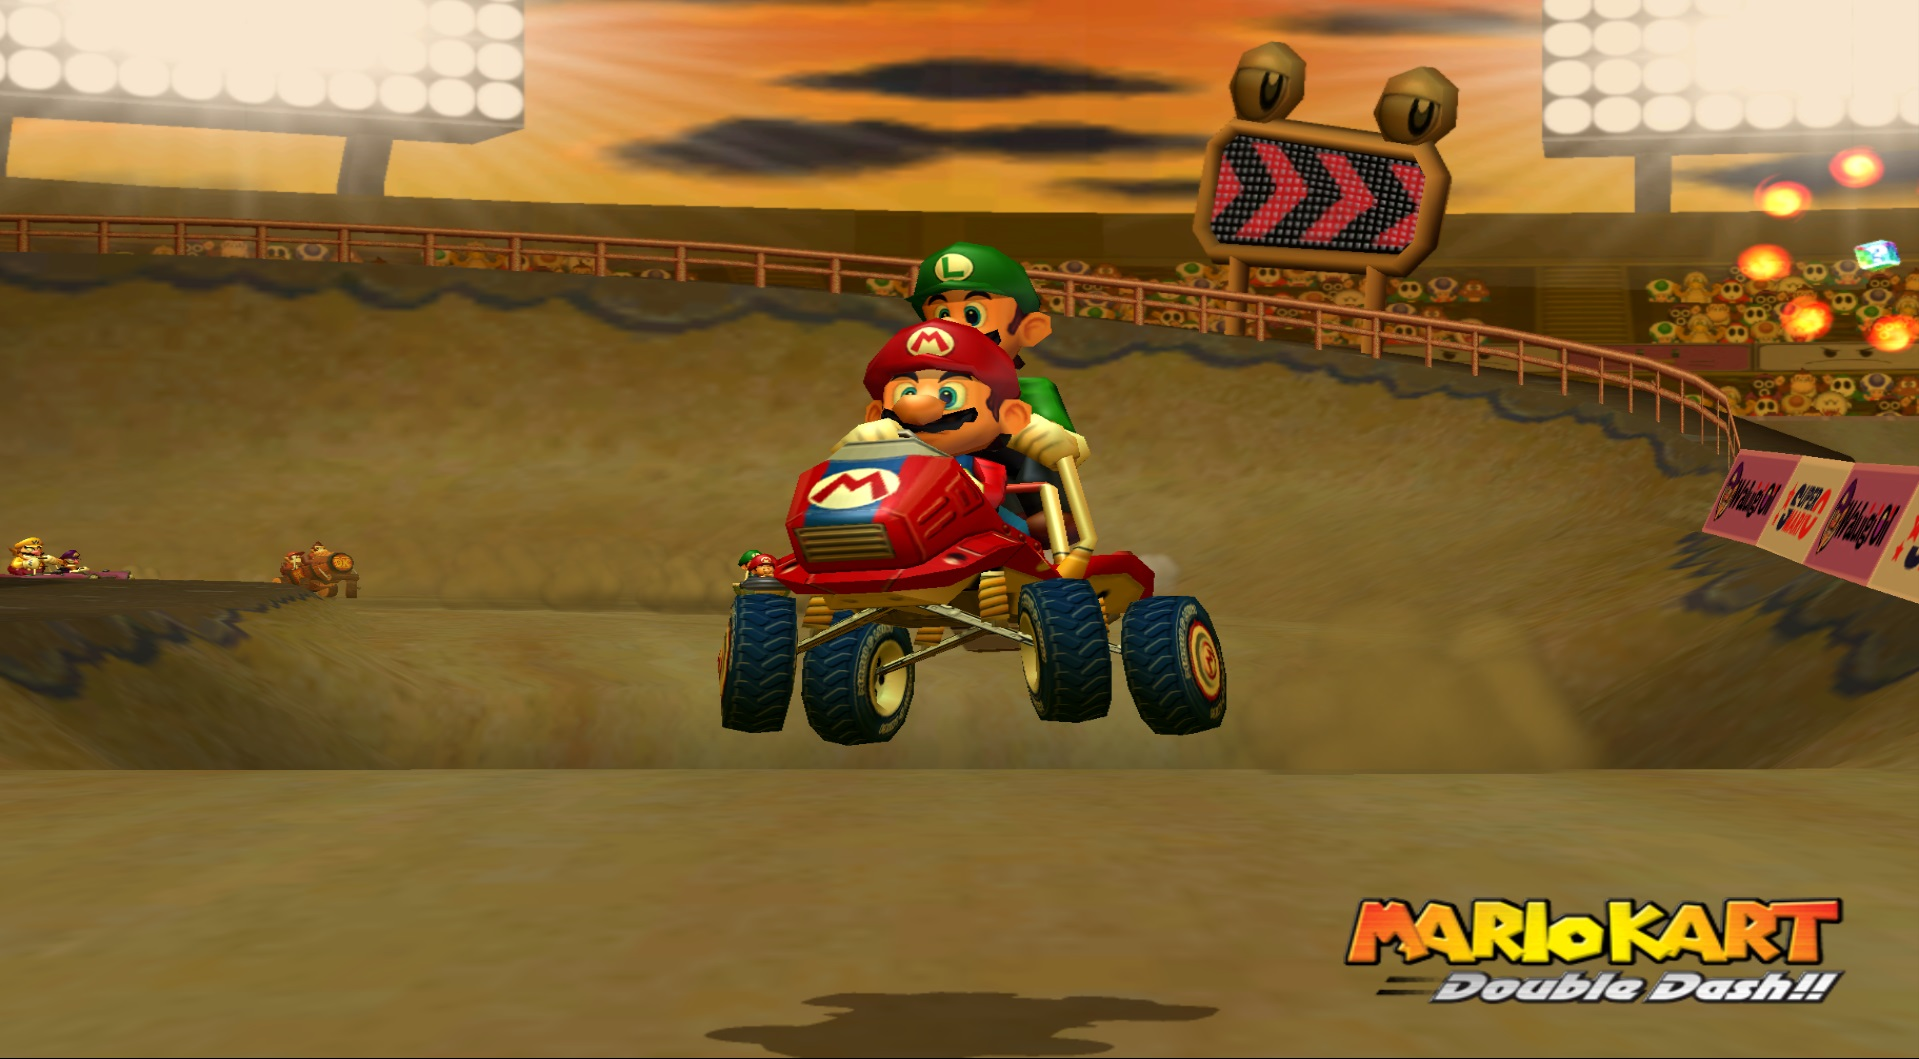 Mario Kart - Double Dash!! (Europe) (En,Fr,De,Es,It) ISO